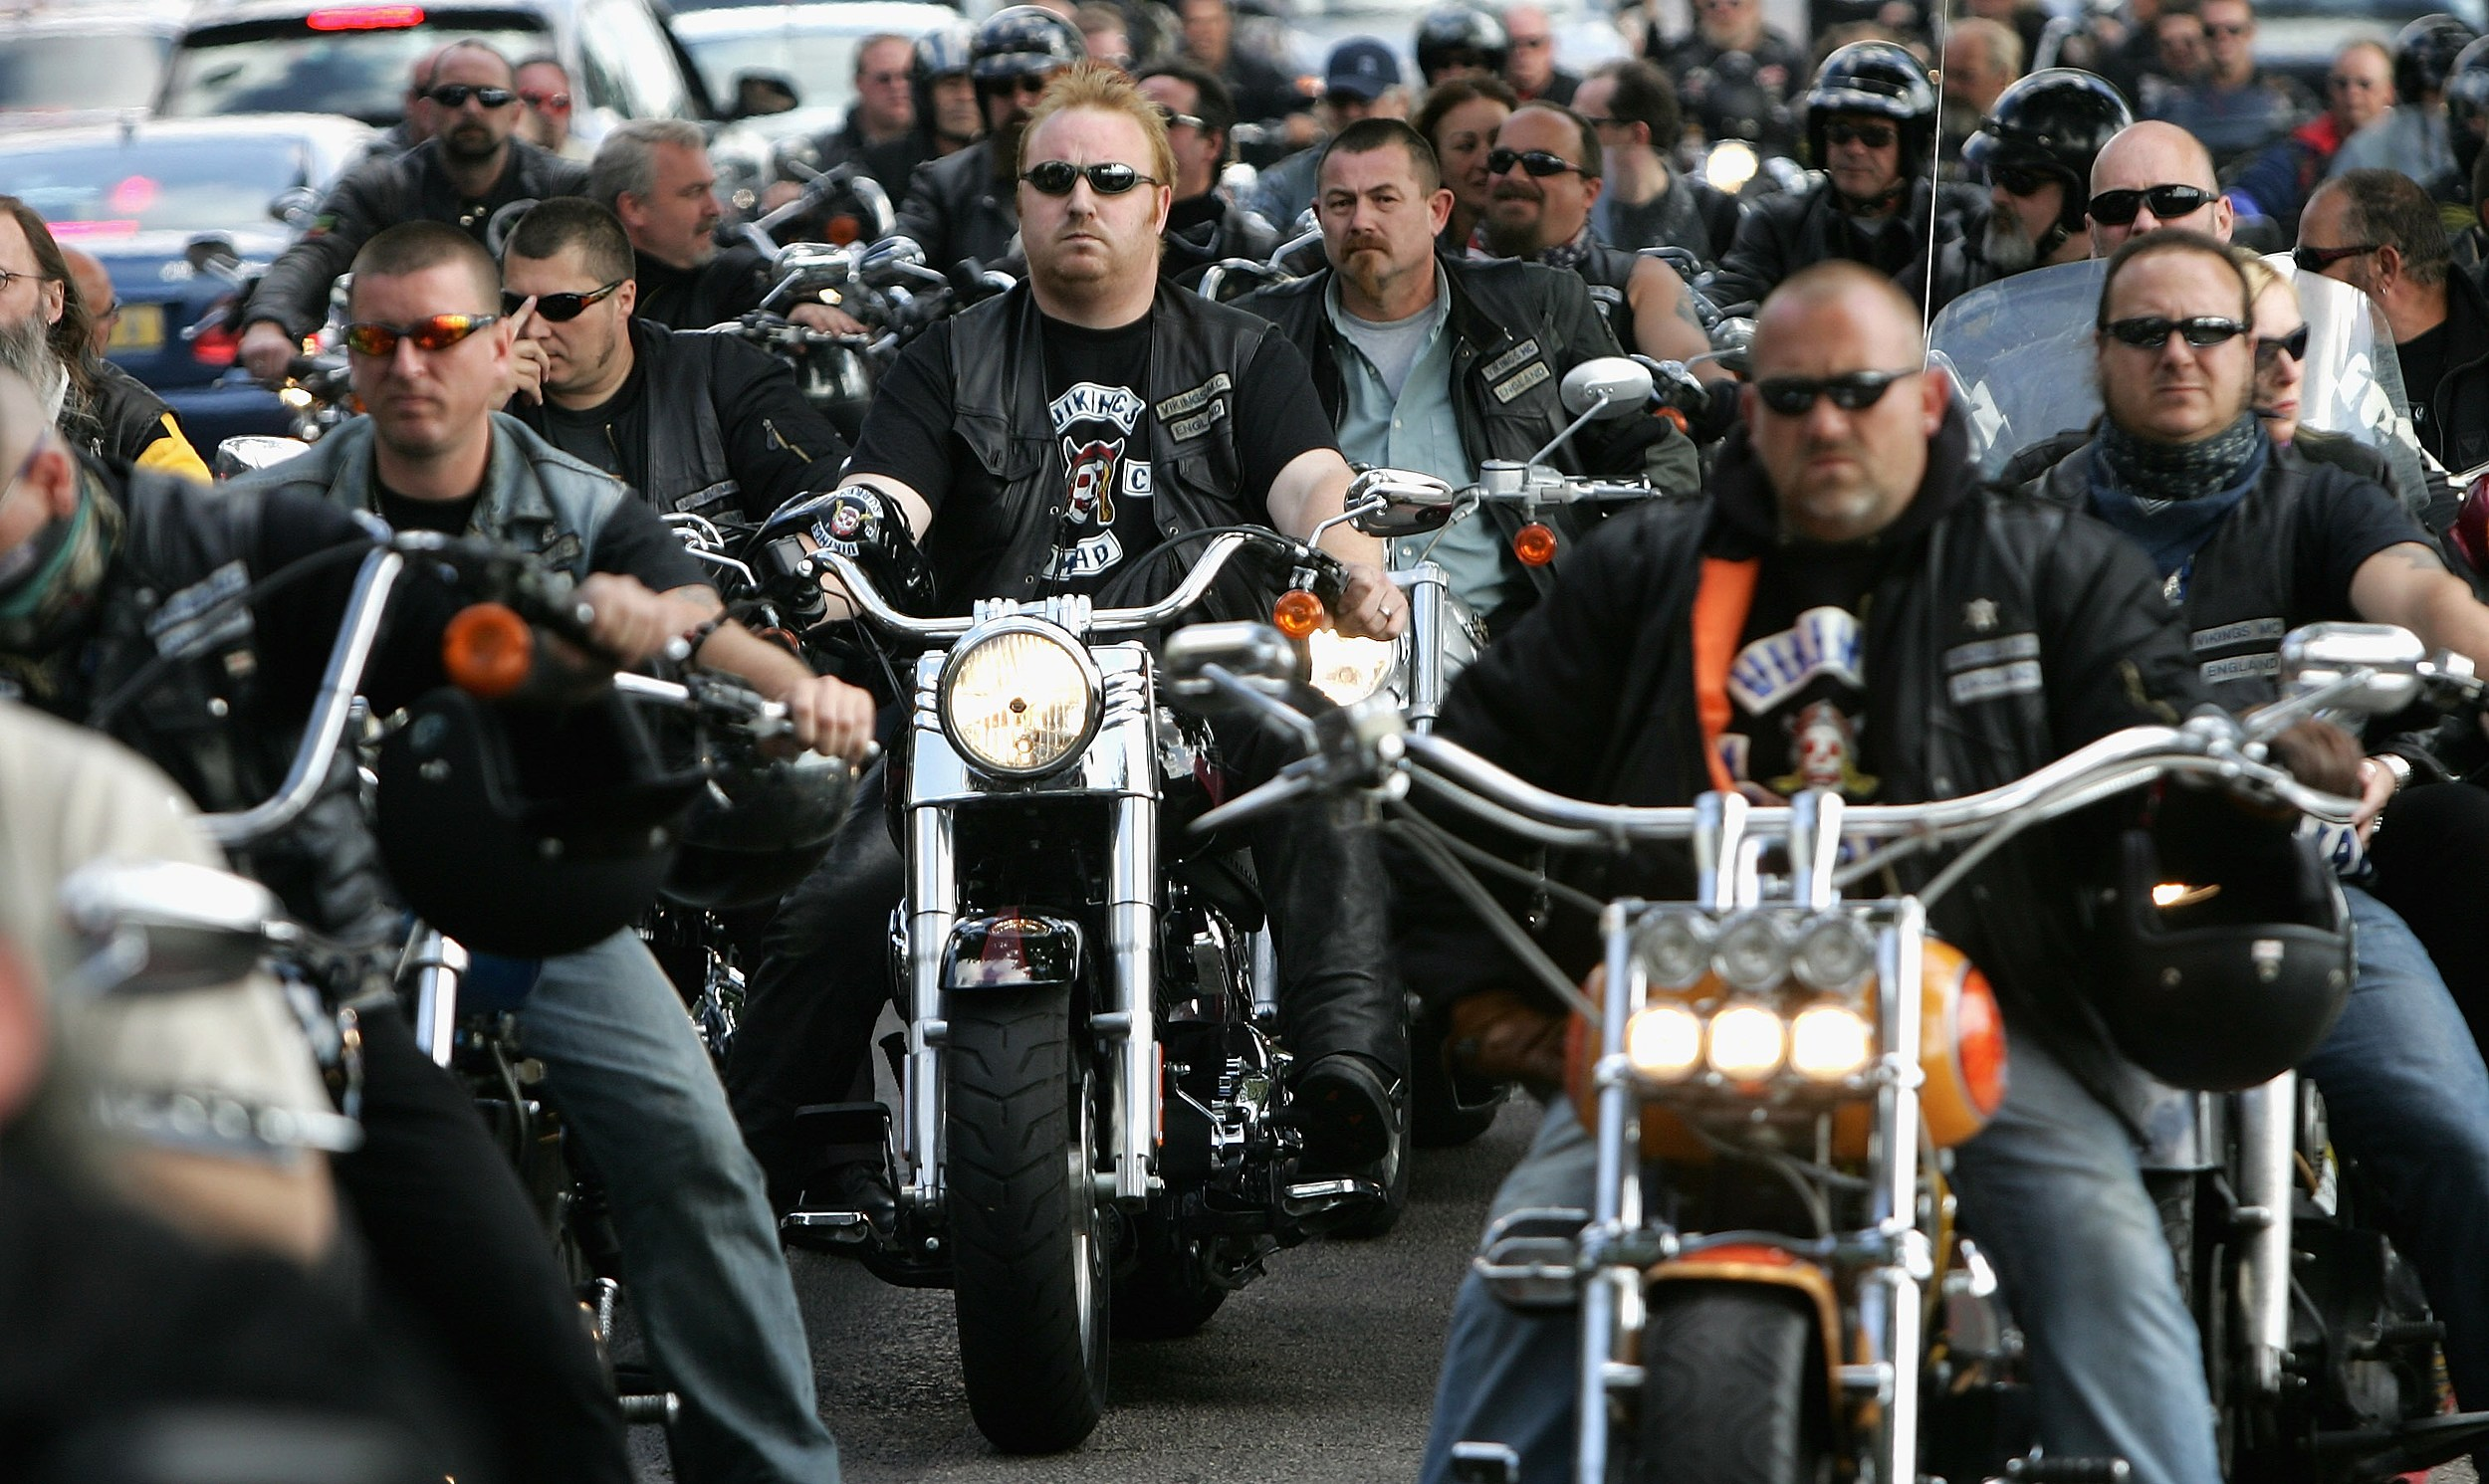 6 Hells Angels Accused of Selling Drugs in the Hudson Valley